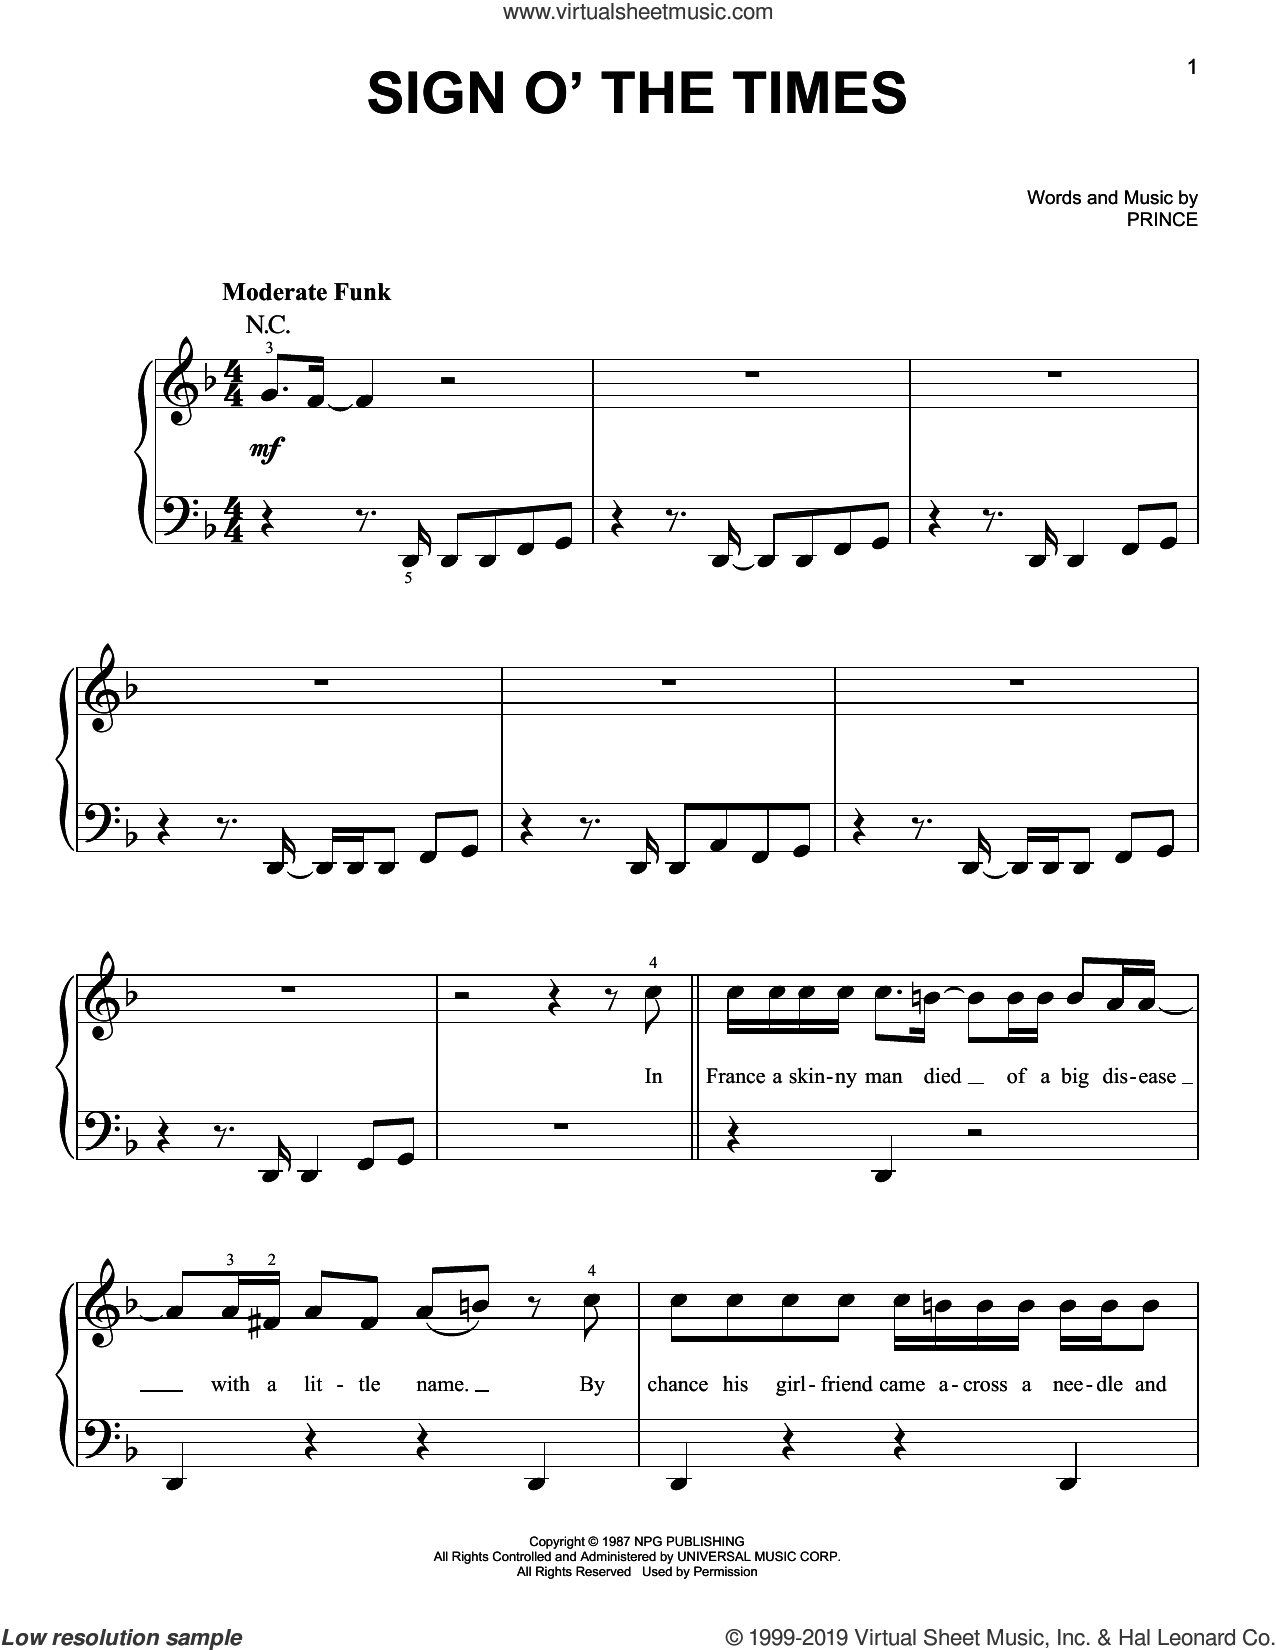 Sign O' The Times sheet music for piano solo by Prince, easy skill level